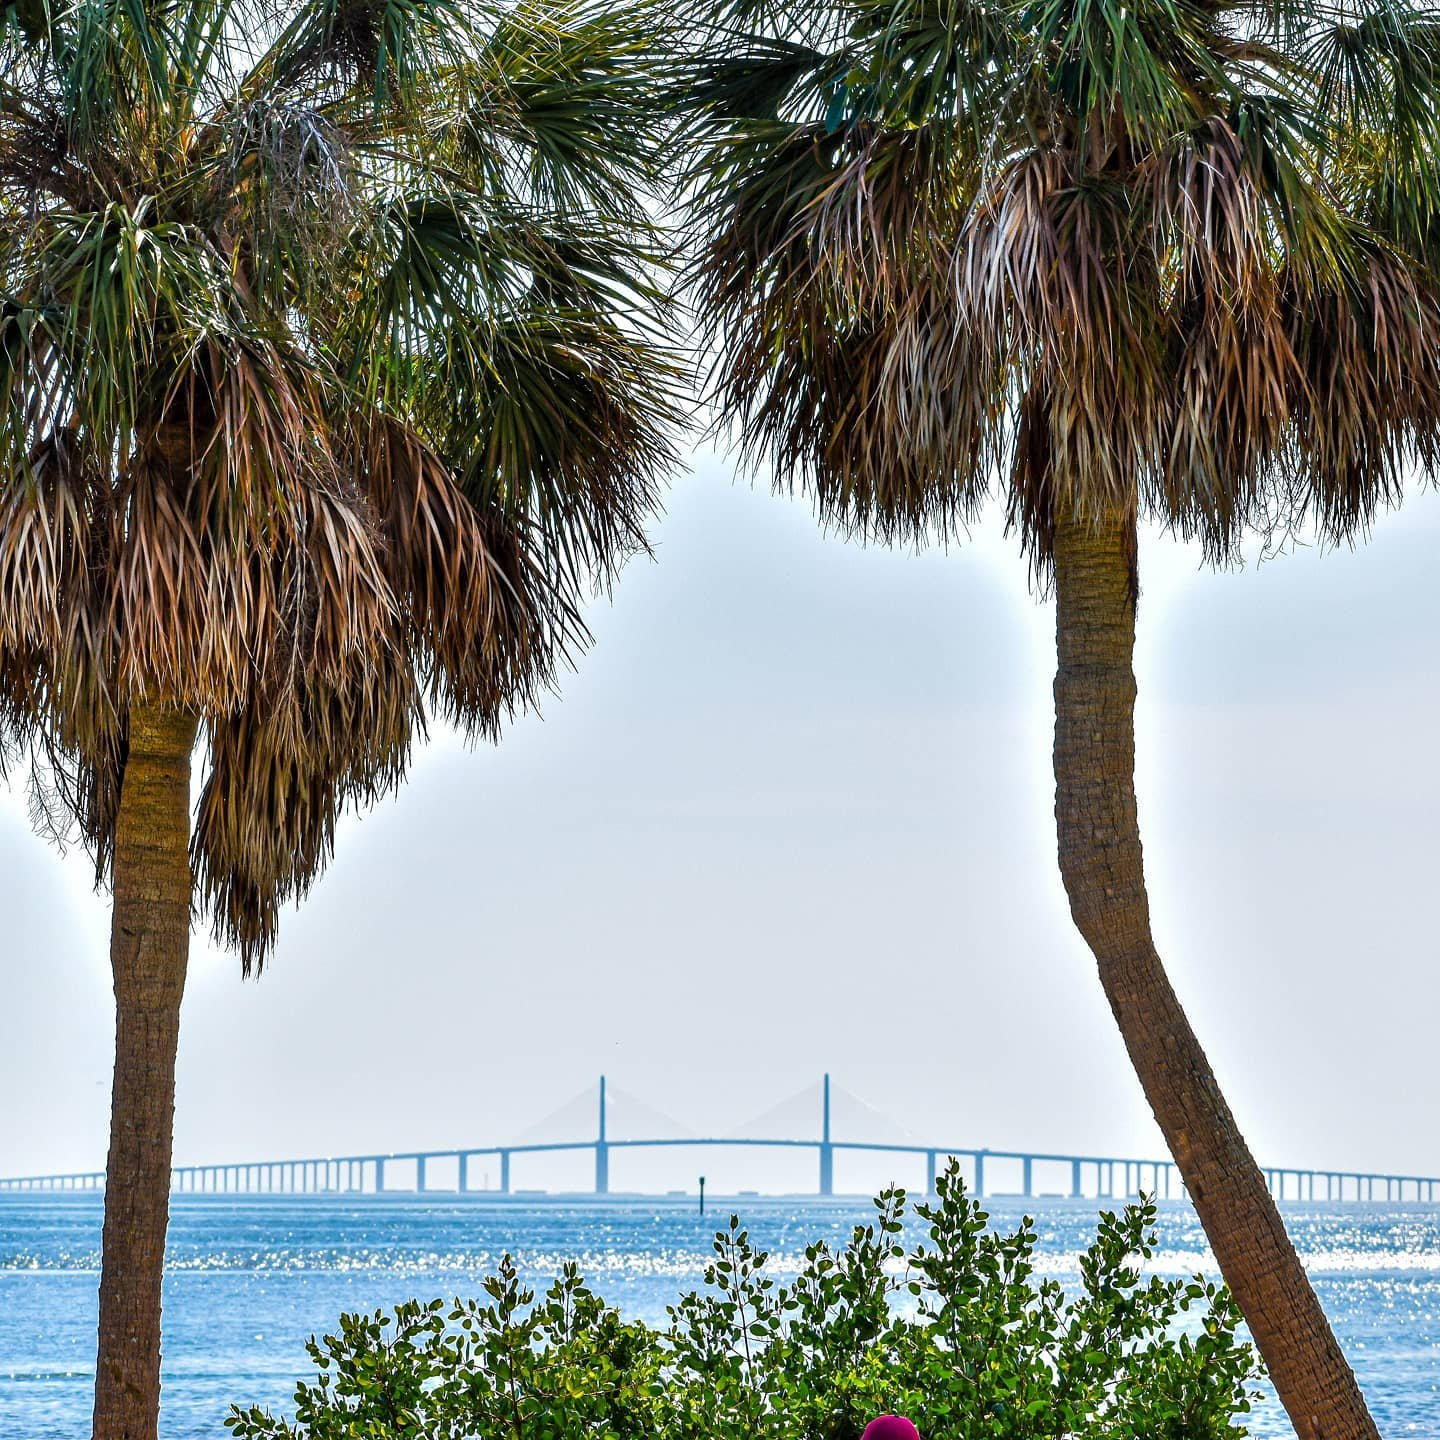 A palm tree and skyway state of mind. 🌴✌☀️ . . . . . . . . . . . . . #cleargram #igersstpete  #sunshinecity #iheartstpete #727 #LoveFL #liveamplified #staysaltyflorida #sunshineshere #pureflorida #instagram_florida #hashtagflorida #roamflorida #explorida #tampabay #onlypinellas #florida_greatshots  #architexture #architecture  #palmtree #bridge #thisplacematters  #pointofview #leadinglines #hey_ihadtosnapthat #wonderful_places #visualsoflife #stayandwander #roadsideamerica #welivewhereyouvacation